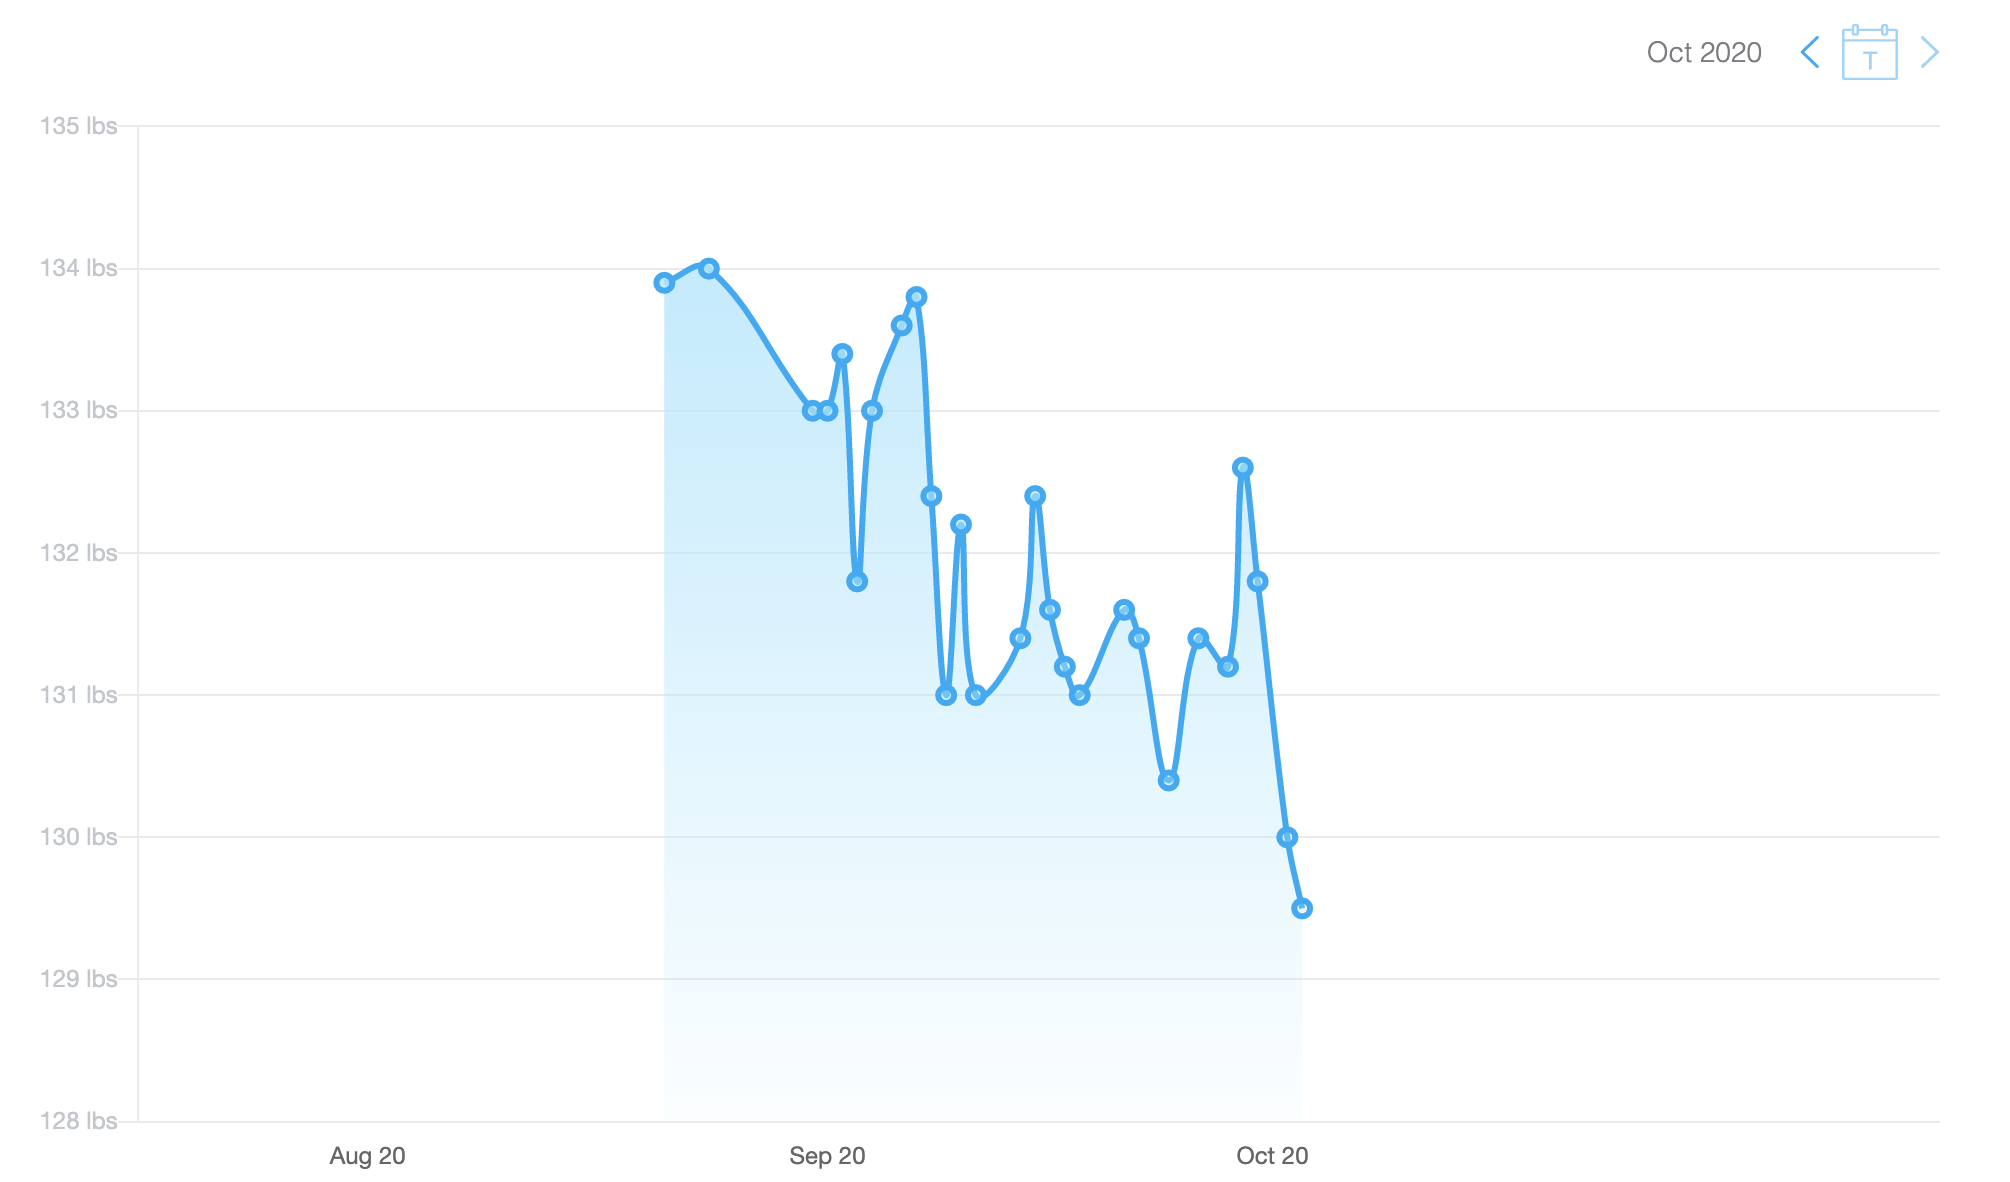 This is a downwards trending weight loss chart in pounds.